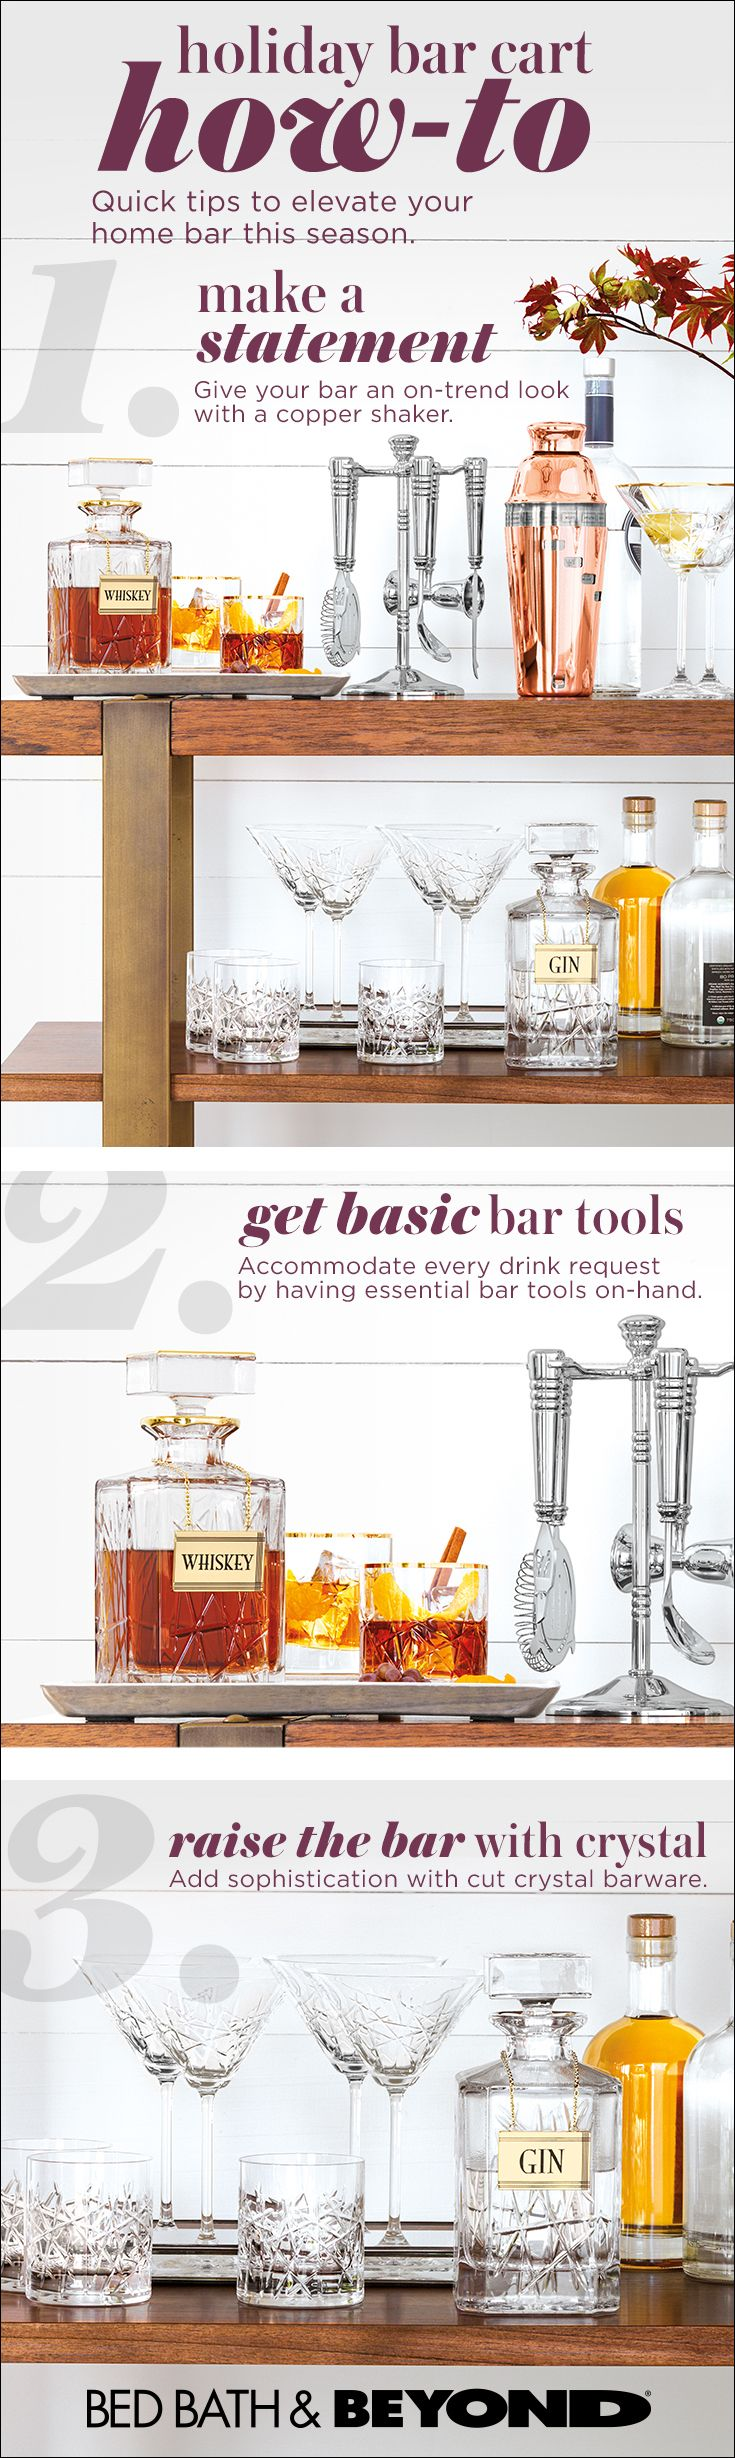 A bar cart is a must for holiday entertaining. It keeps party essentials organized and spirits bright all night by making it easy for friends to help themselves. Cheers!